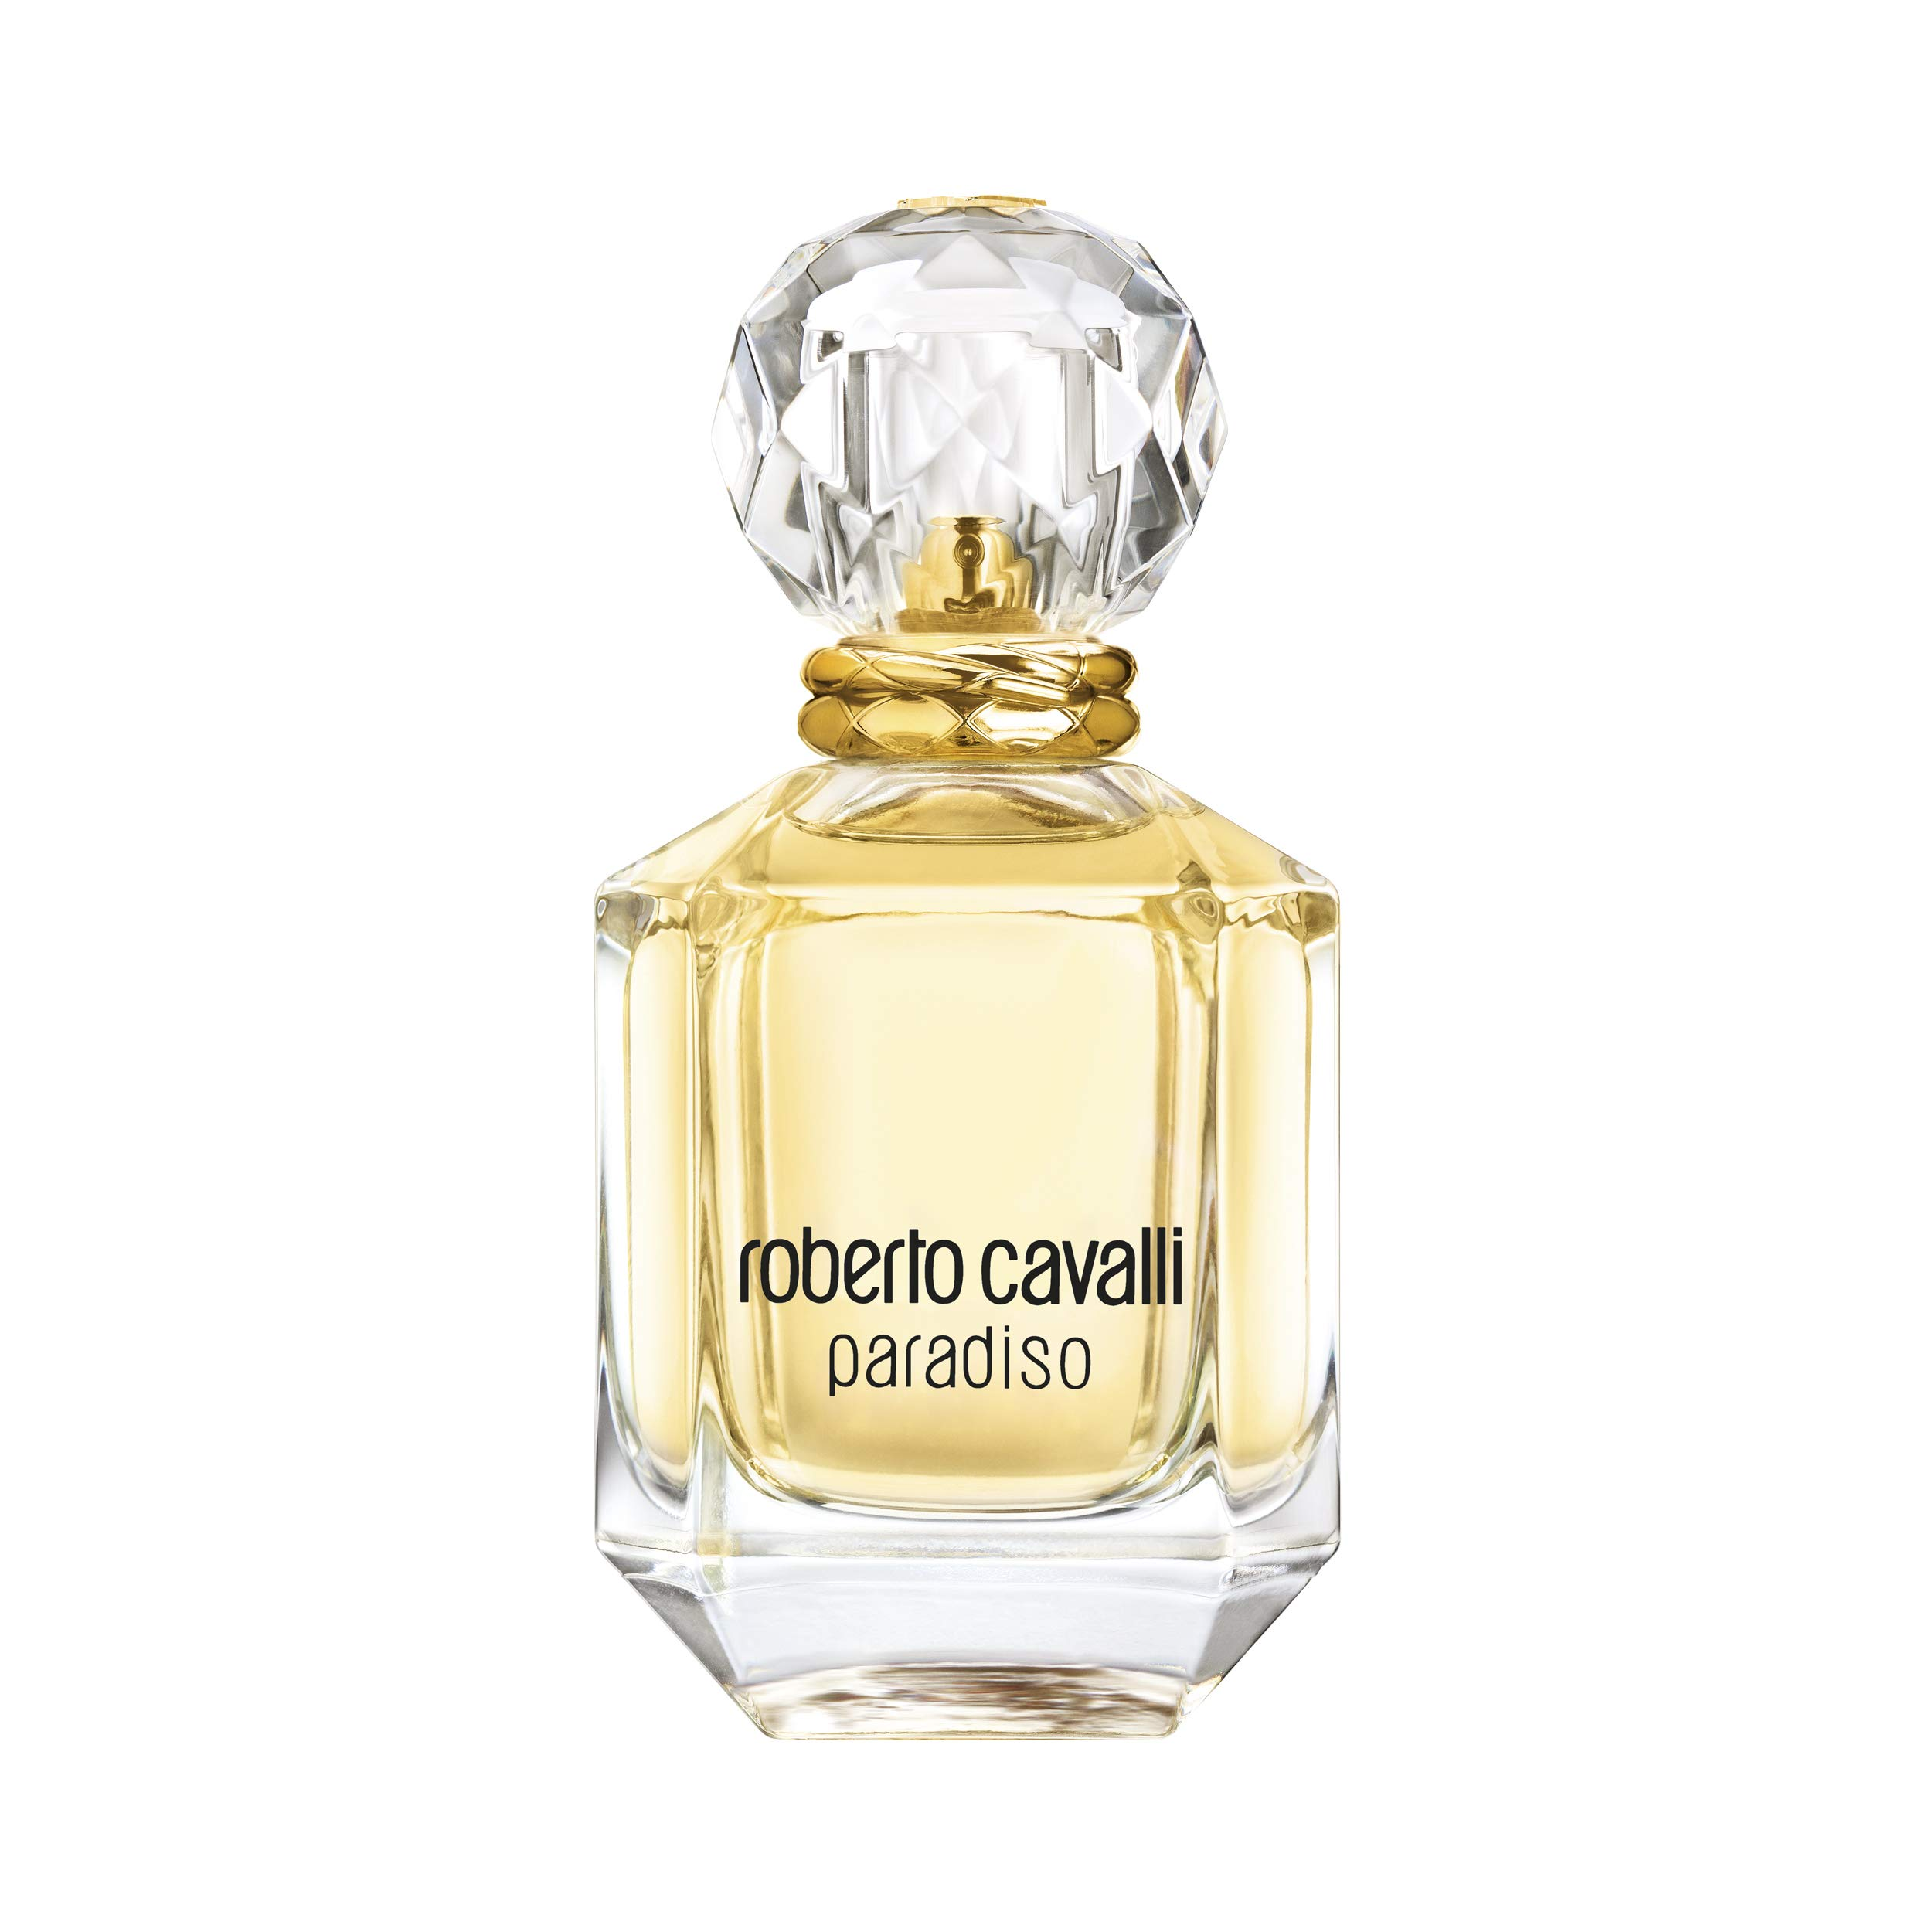 Amazon.com  ROBERTO CAVALLI Paradiso Eau de Parfum, 2.5 Fl Oz  Roberto  Cavalli  Luxury Beauty be0efc68fa